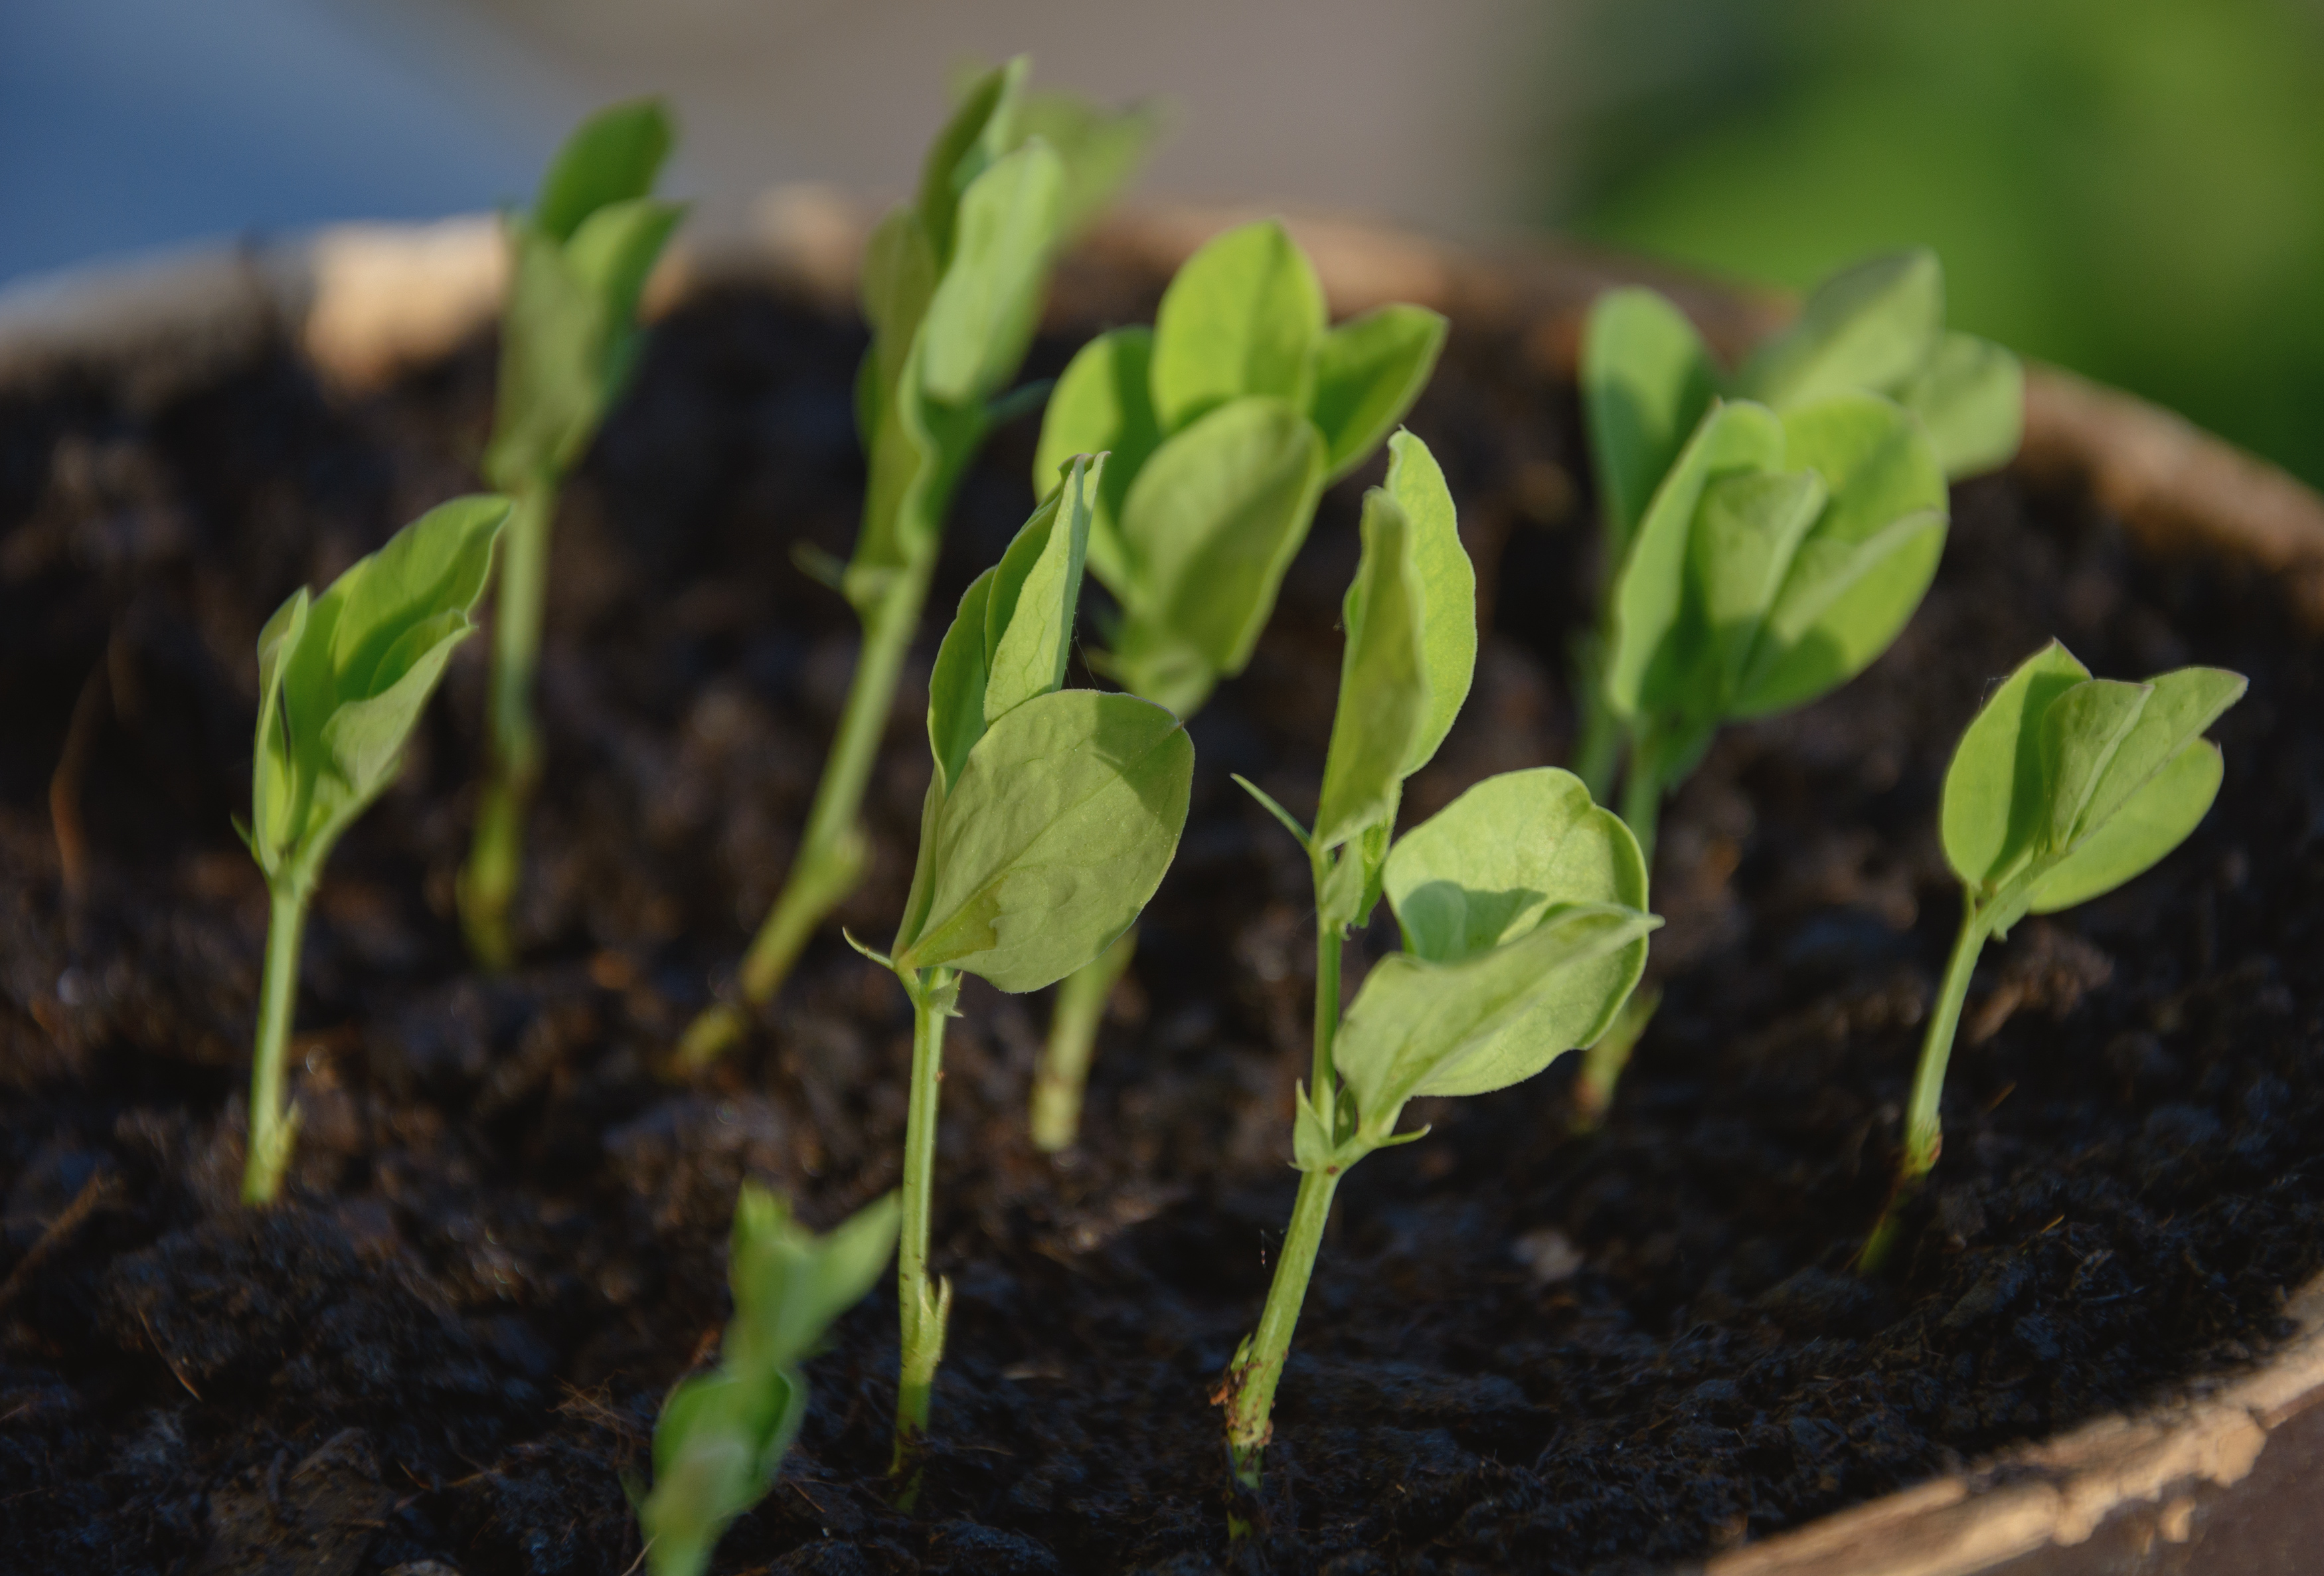 Young plant seedlings